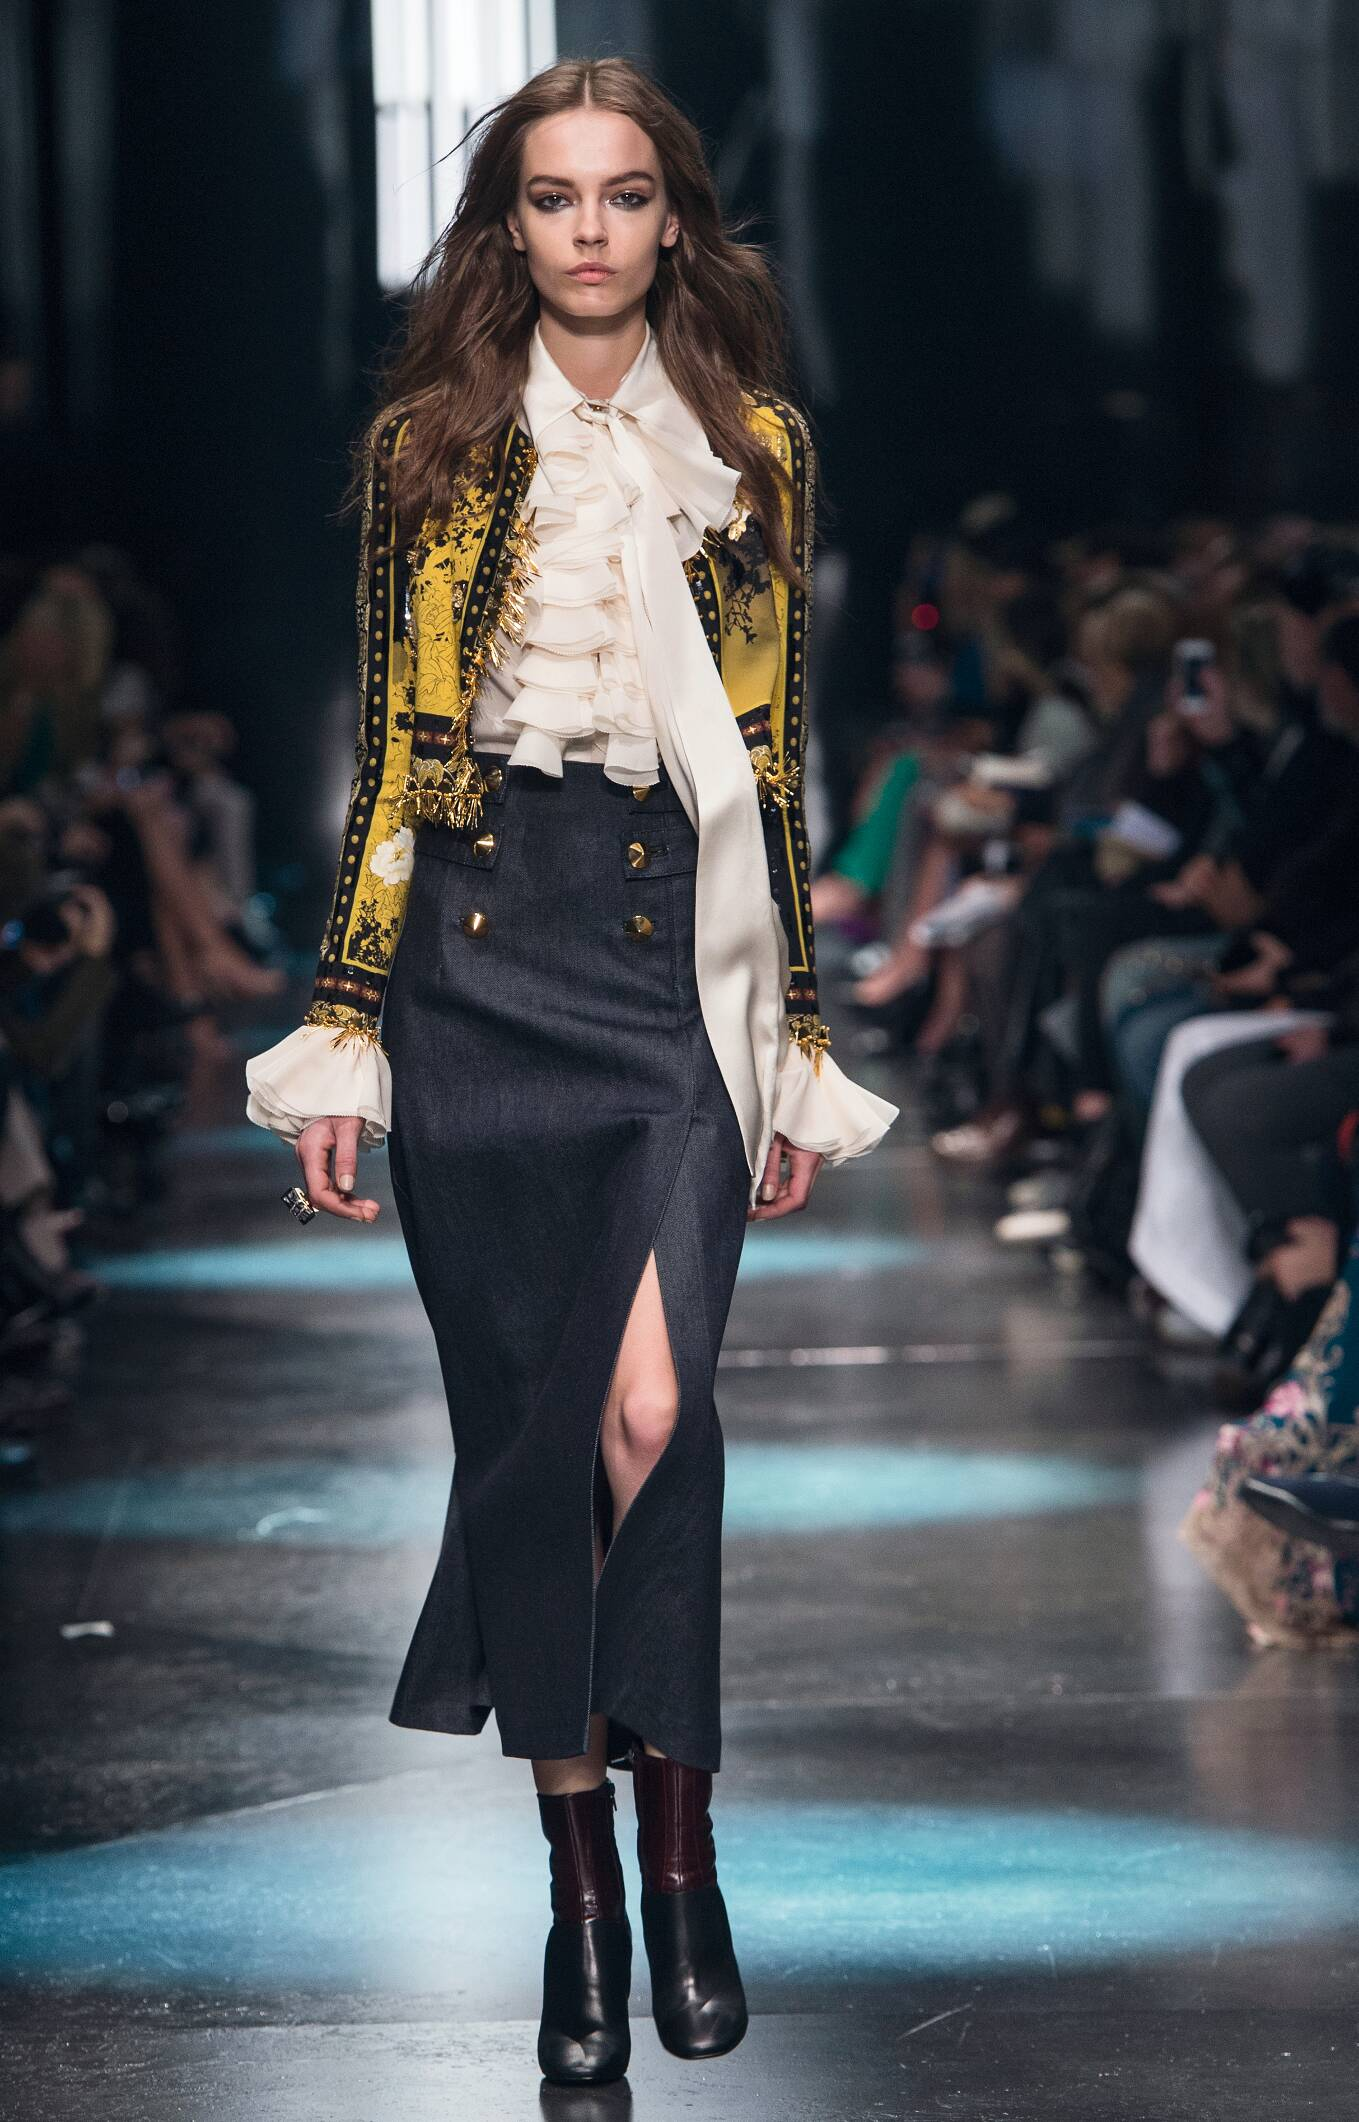 2015 Fashion Woman Model Roberto Cavalli Collection Catwalk